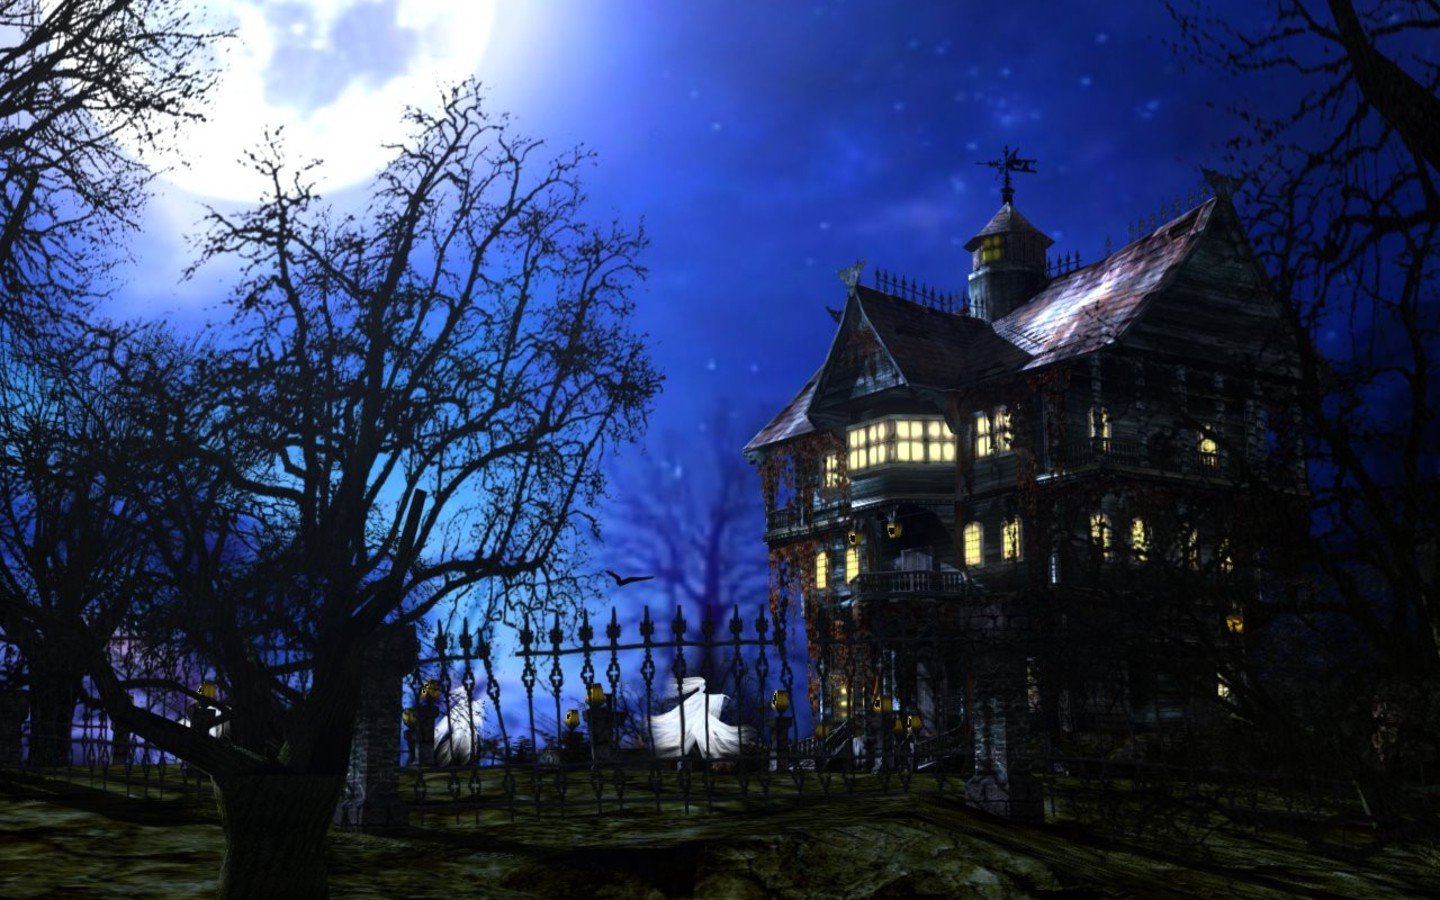 Full Hd Kiss Wallpaper Download Horror Ghost Houses Wallpapers Hq Image Size 1440x900